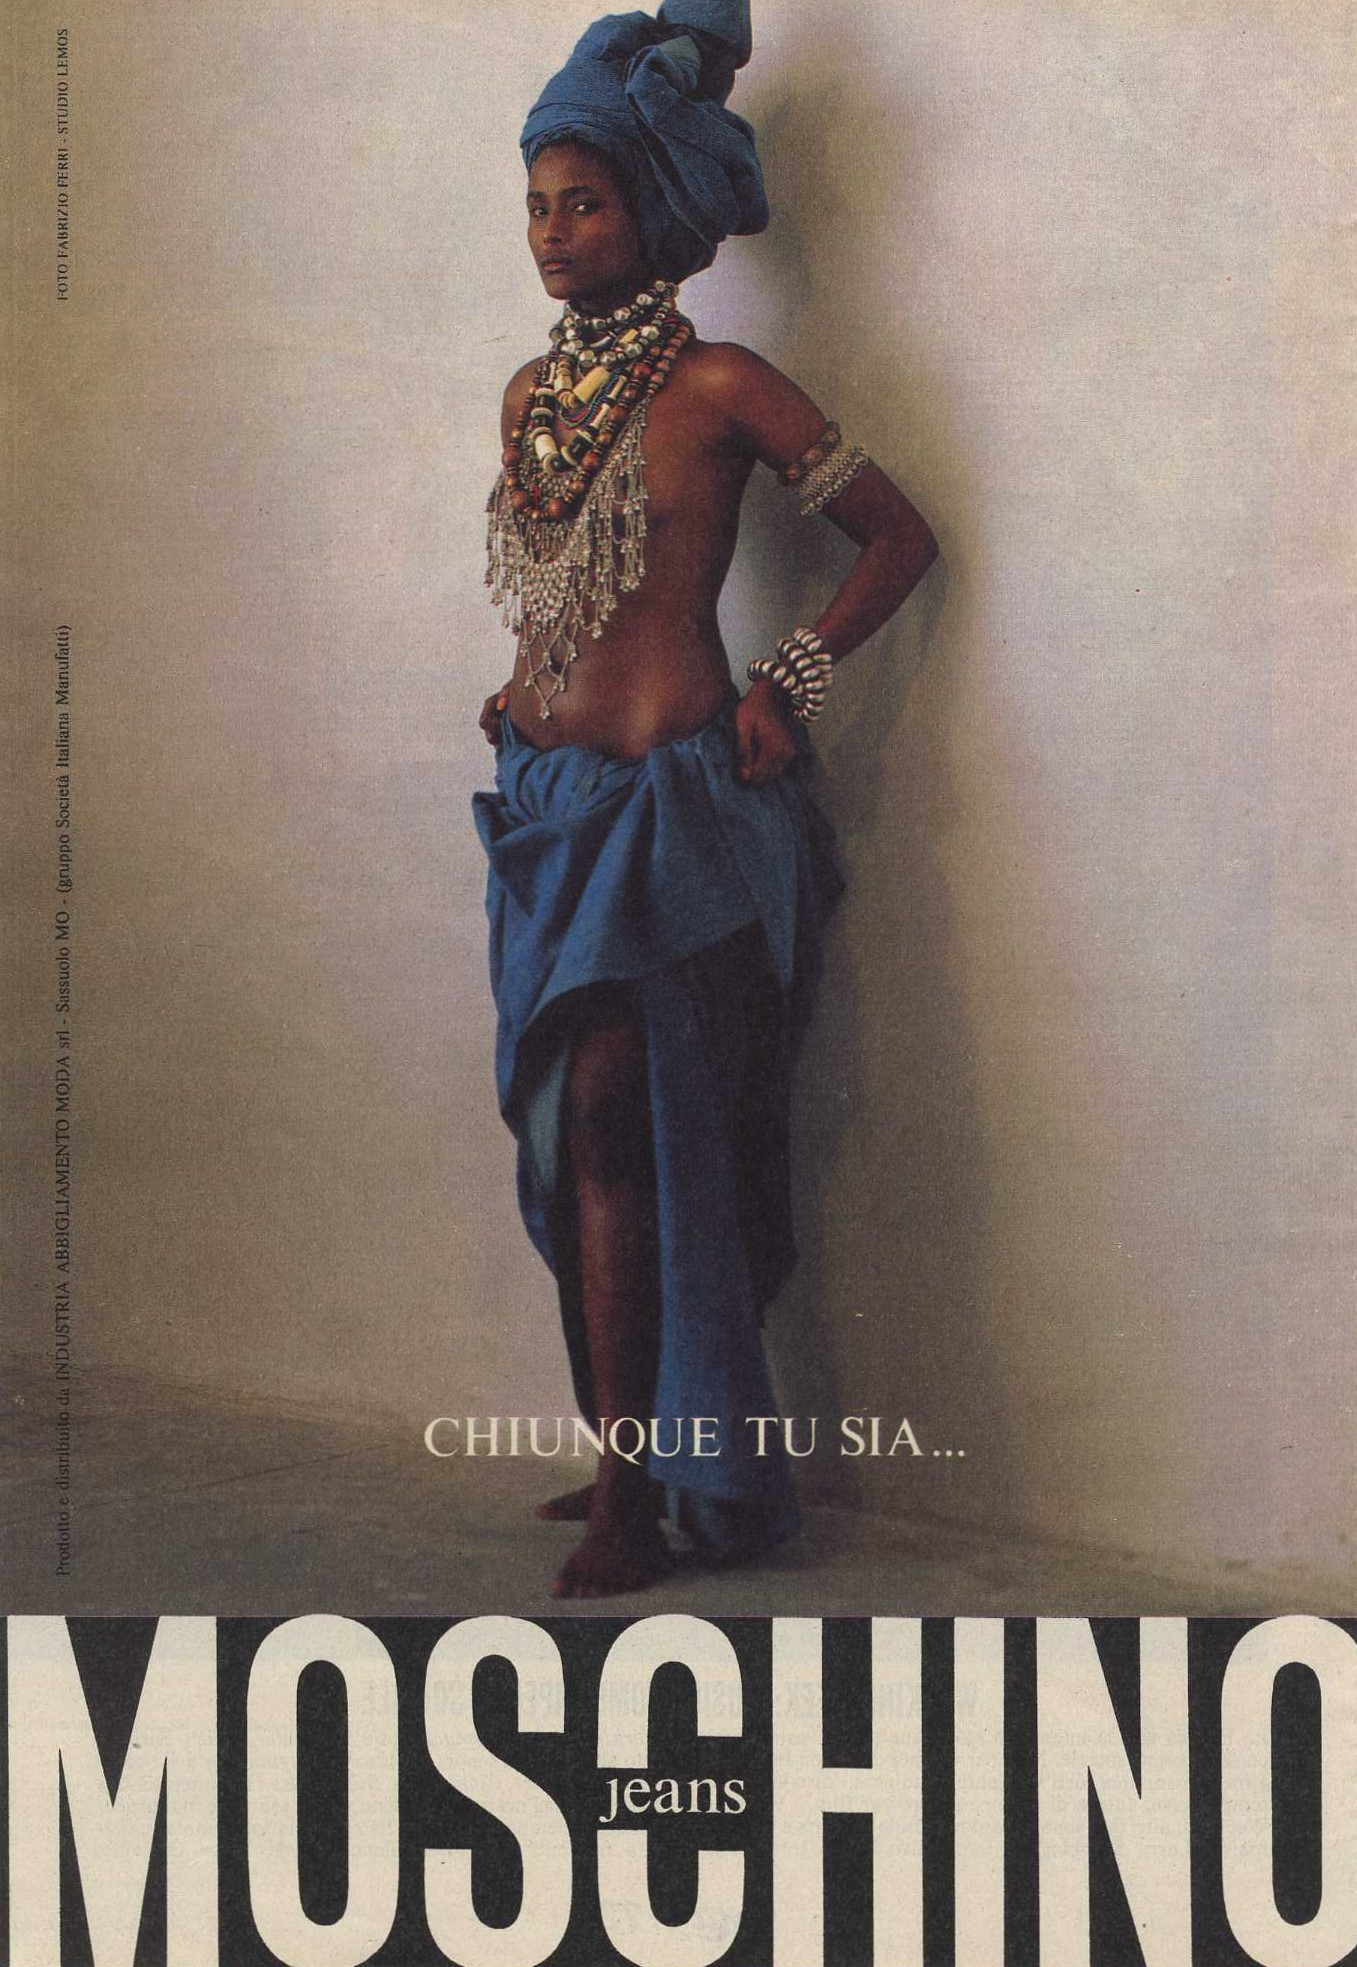 MOSCHINO JEANS | AD | PHOTOGRAPHY FABRIZIO FERRI | MAX | MARCH 1988